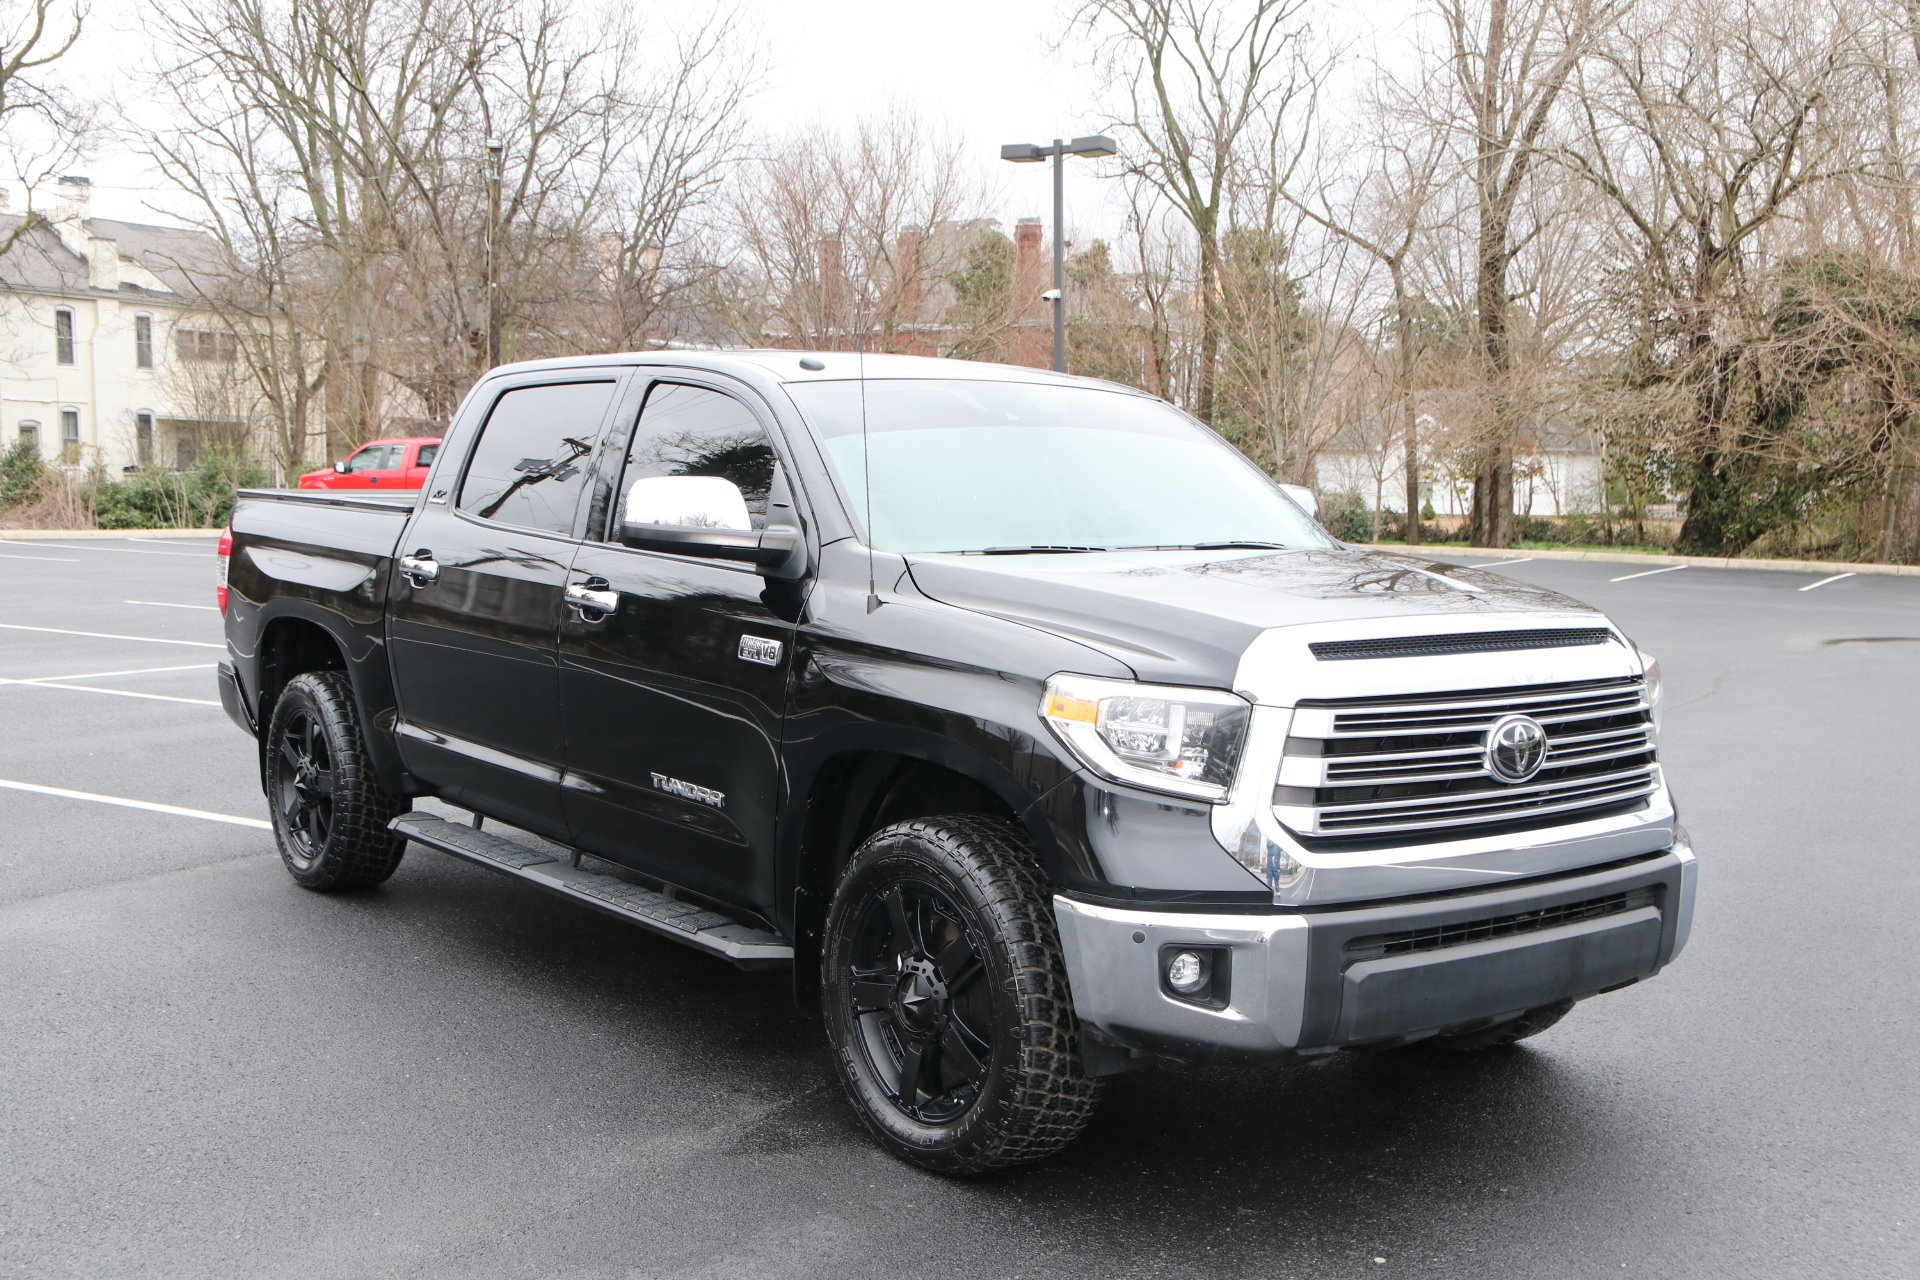 Used 2019 Toyota Tundra LIMITED CREW CAB 4X4 W/NAV Limited for sale Sold at Auto Collection in Murfreesboro TN 37129 1